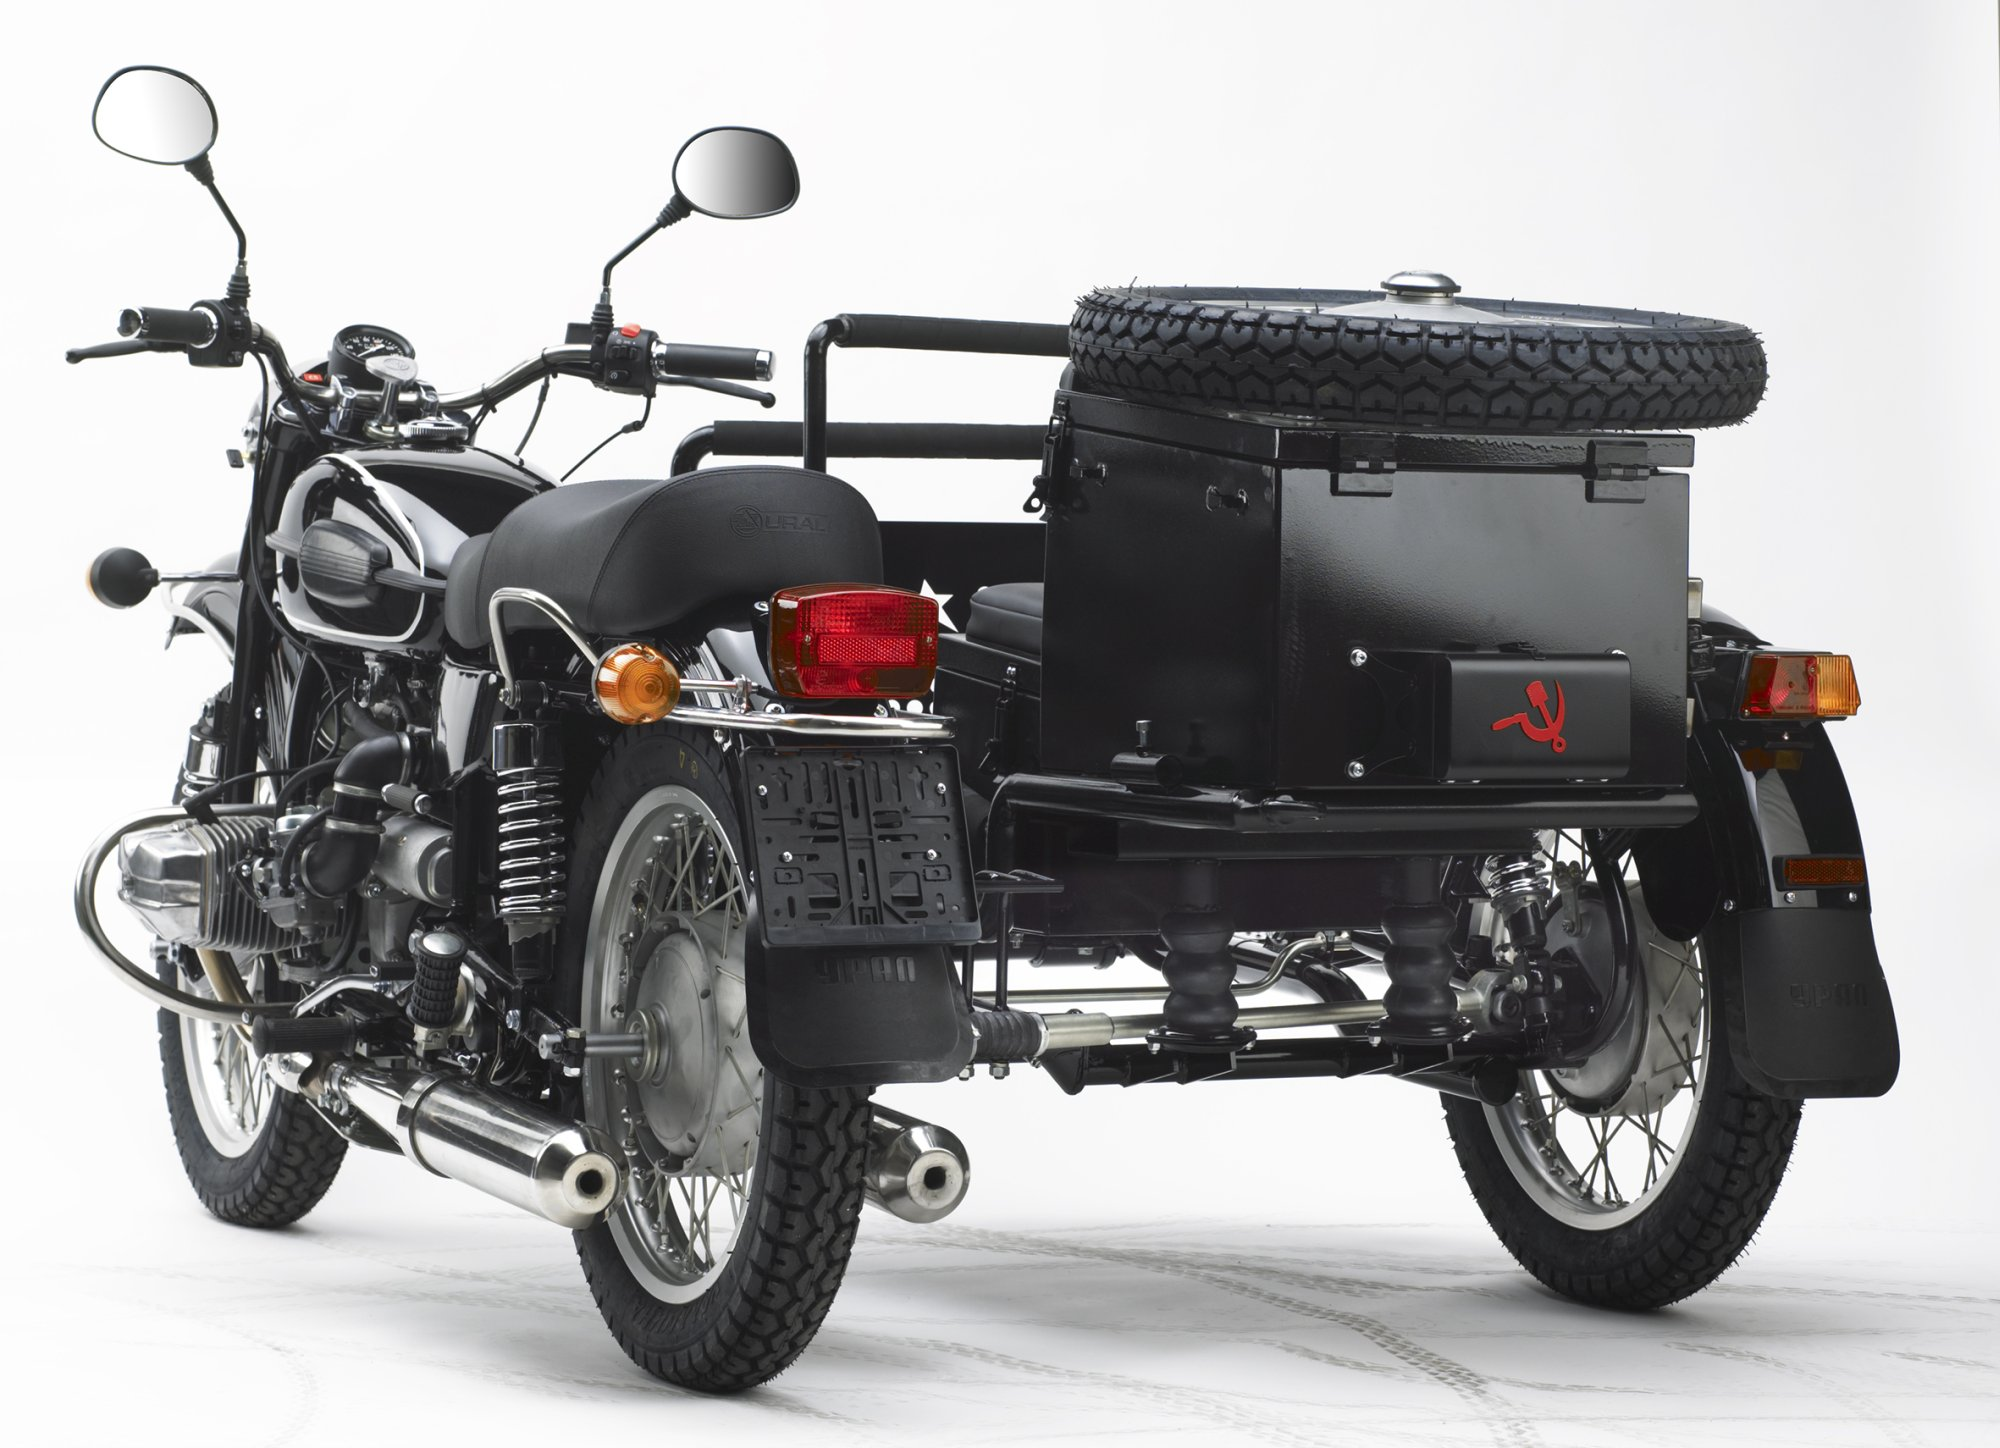 sidecar ural ural sidecarfor sale ural sidecarmatte black. Black Bedroom Furniture Sets. Home Design Ideas